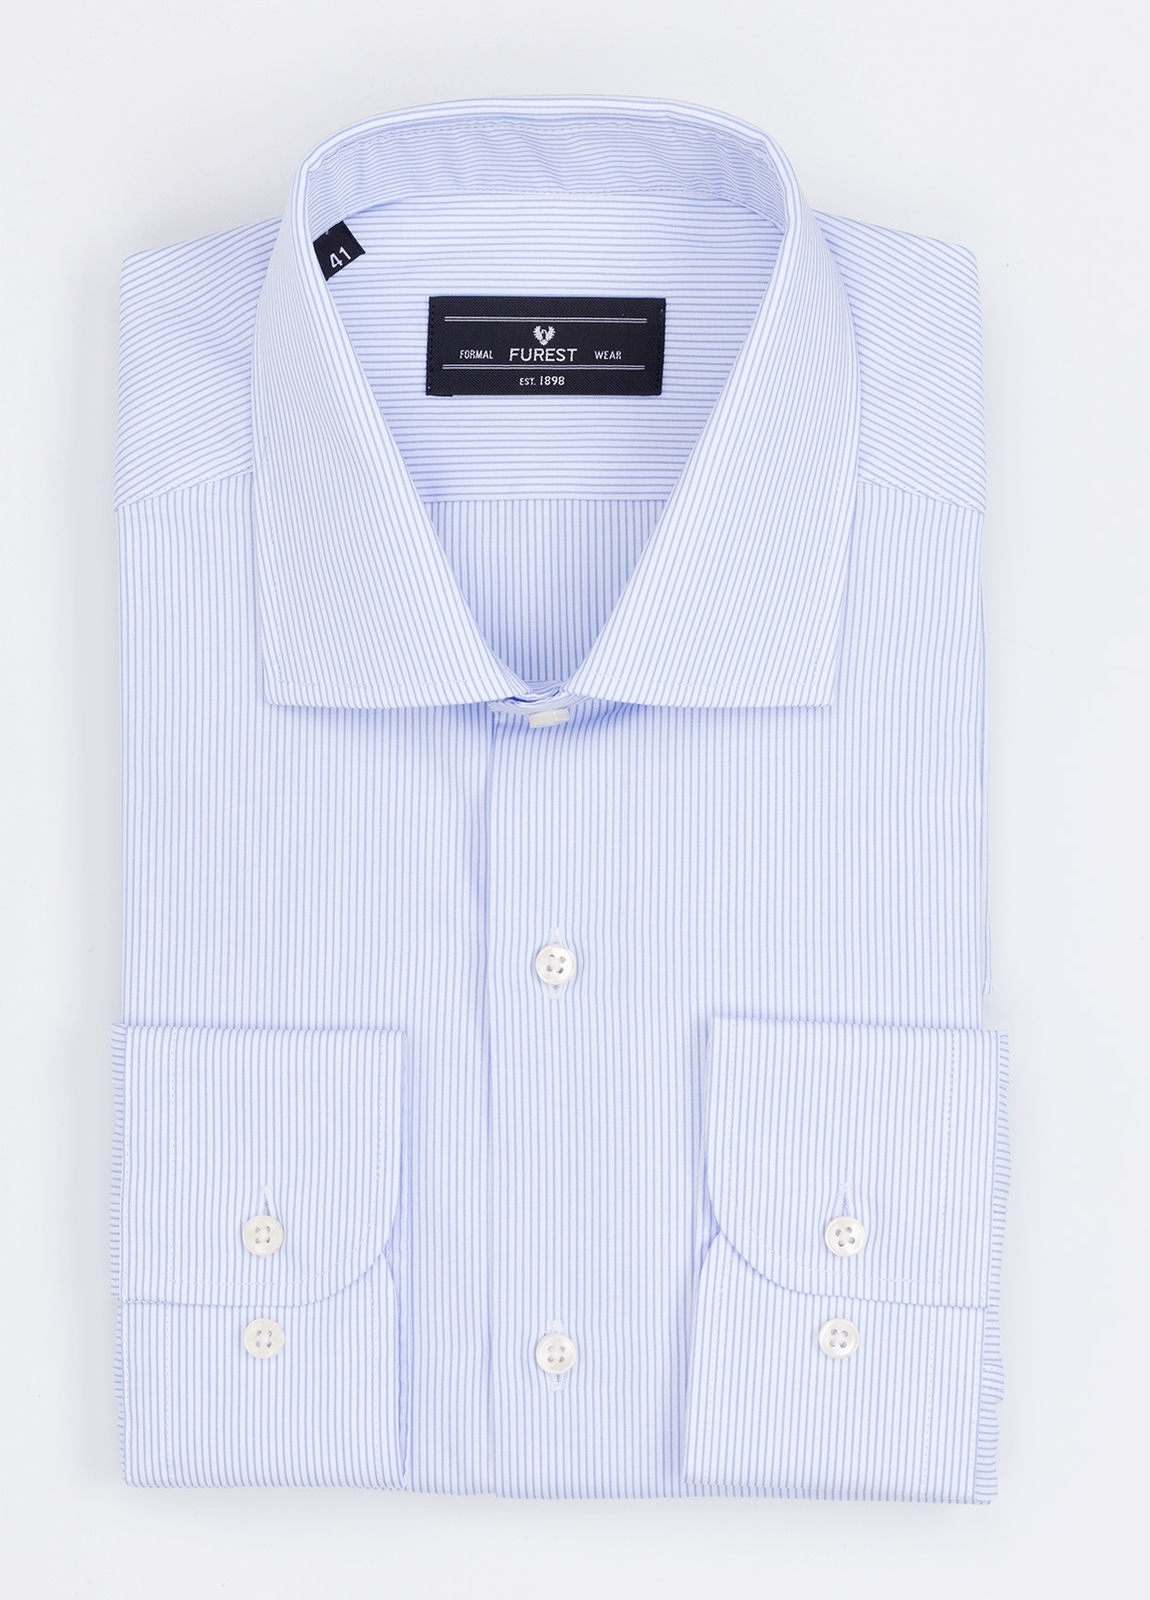 Camisa Formal Wear REGULAR FIT cuello italiano modelo TAILORED NAPOLI con diseño de rayas, color celeste. 100% Algodón.